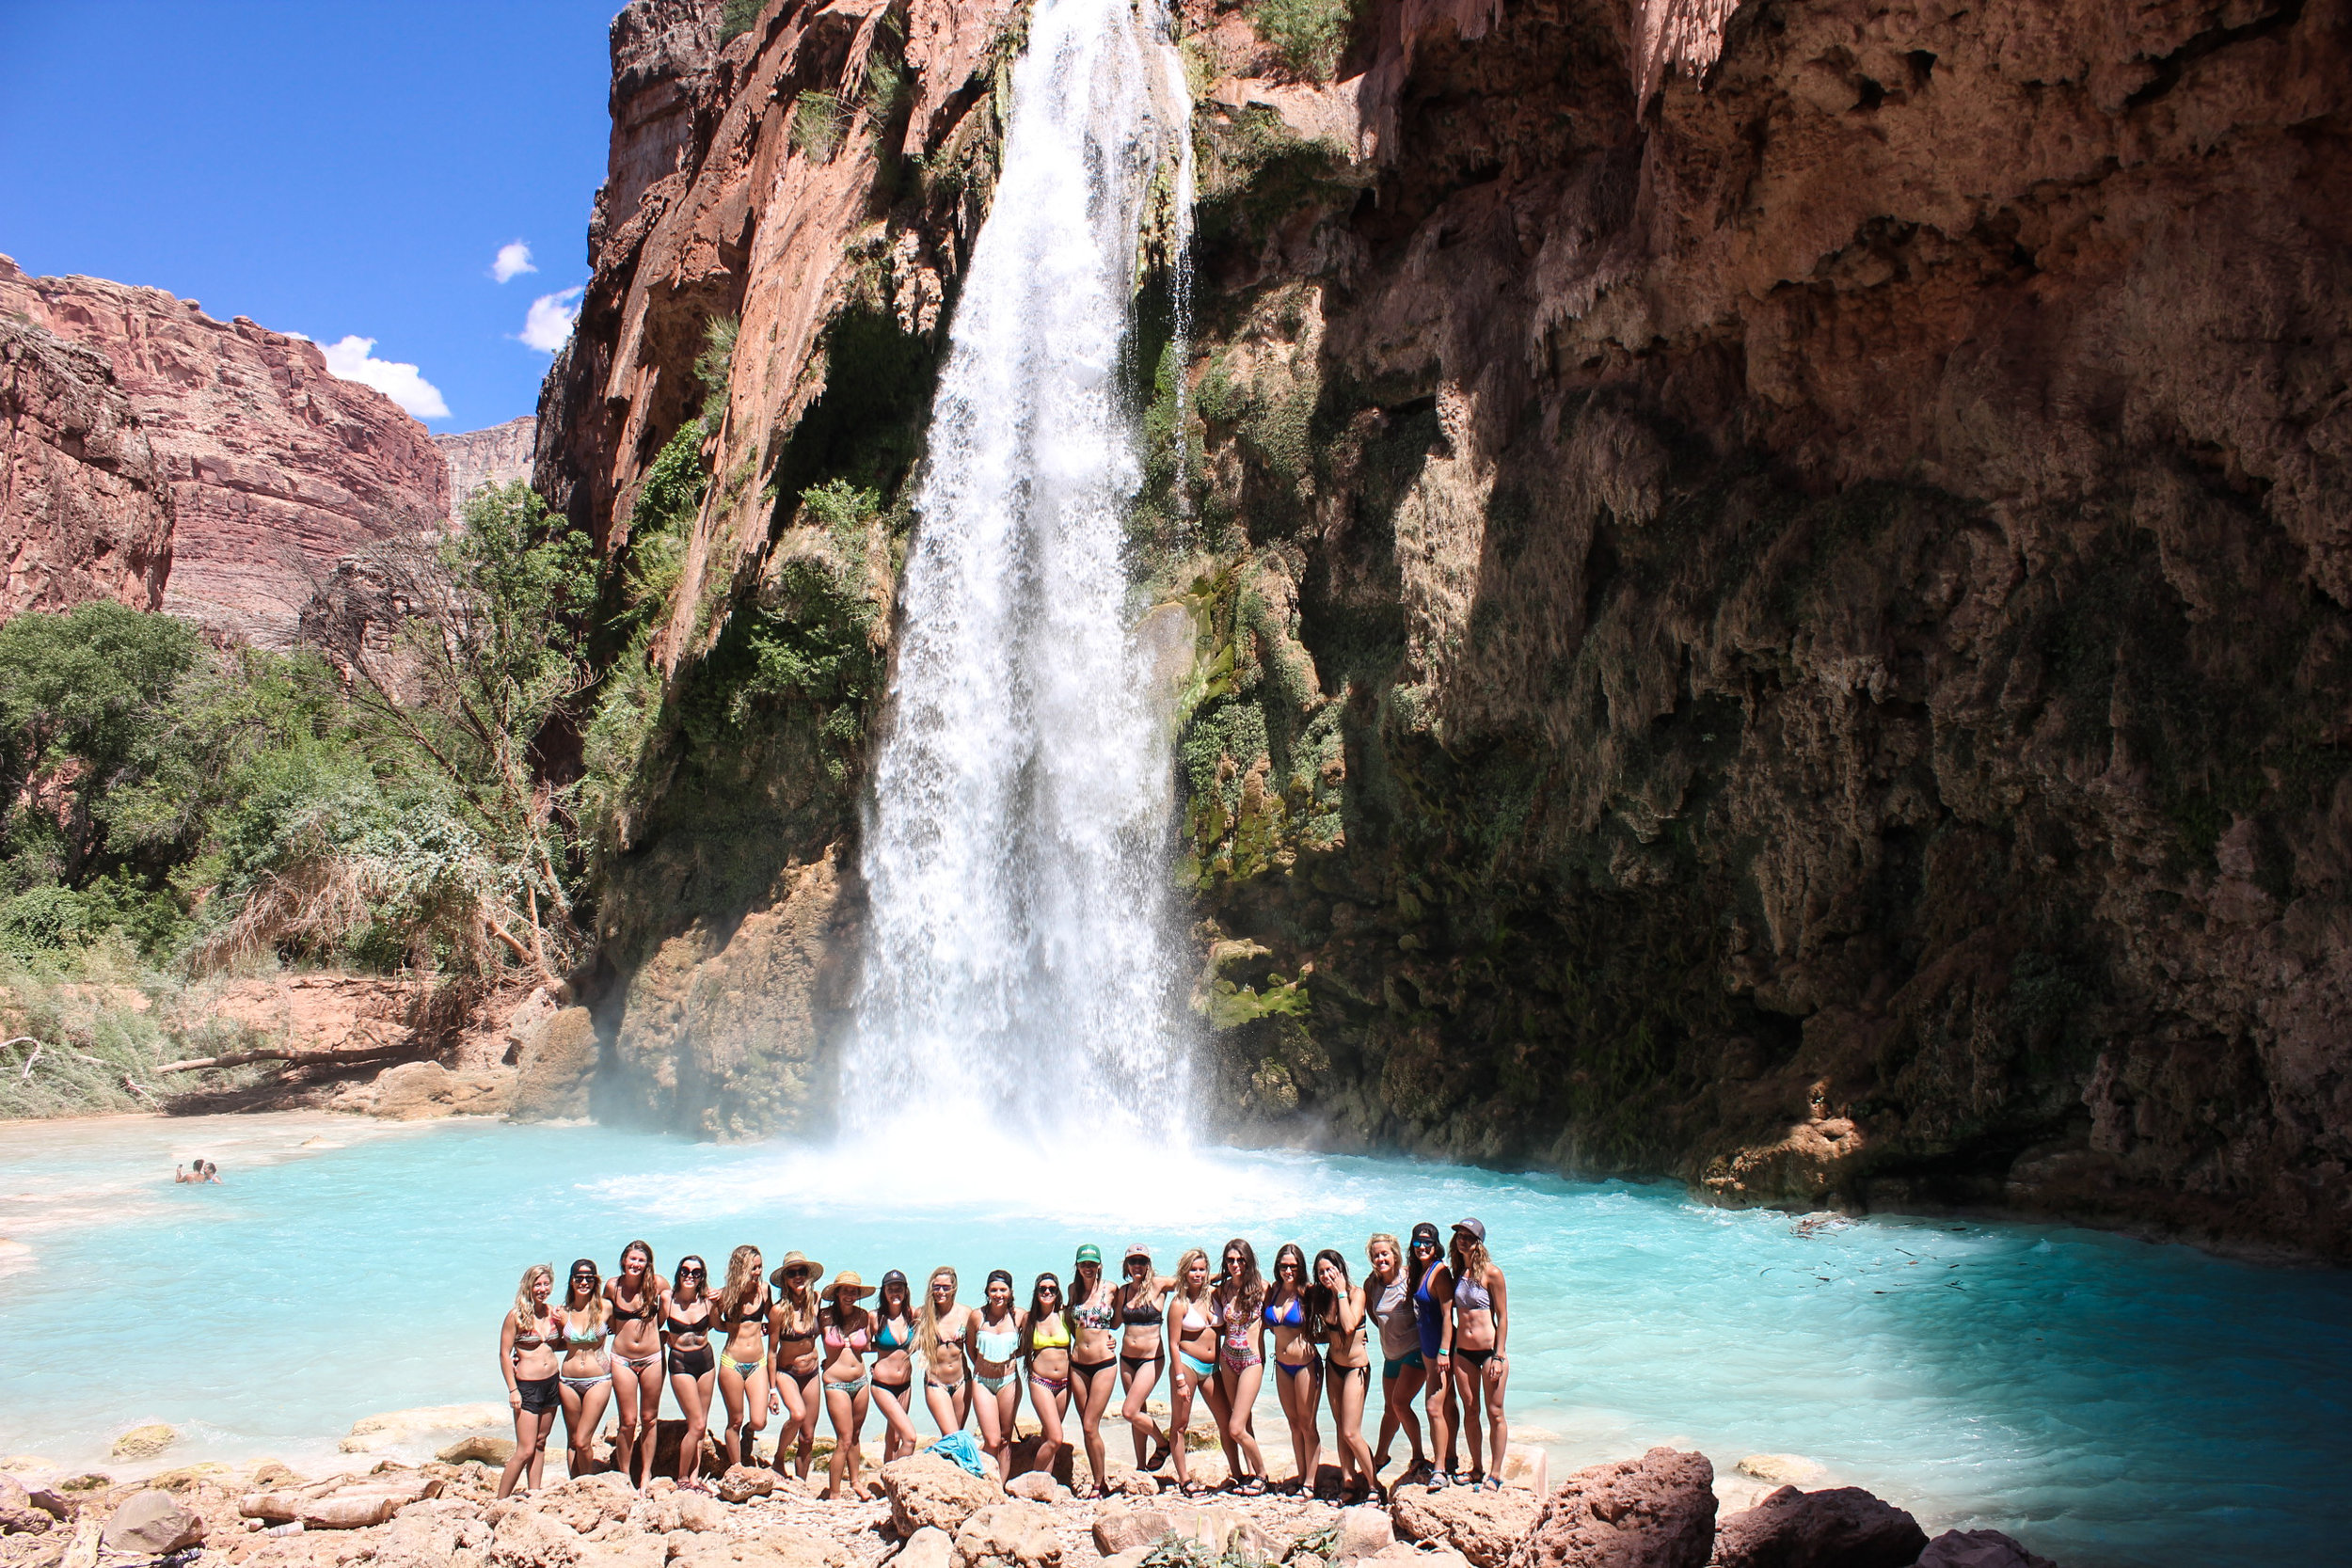 Just 20 adventure loving women and a stunningly blue 100ft waterfall. NBD.